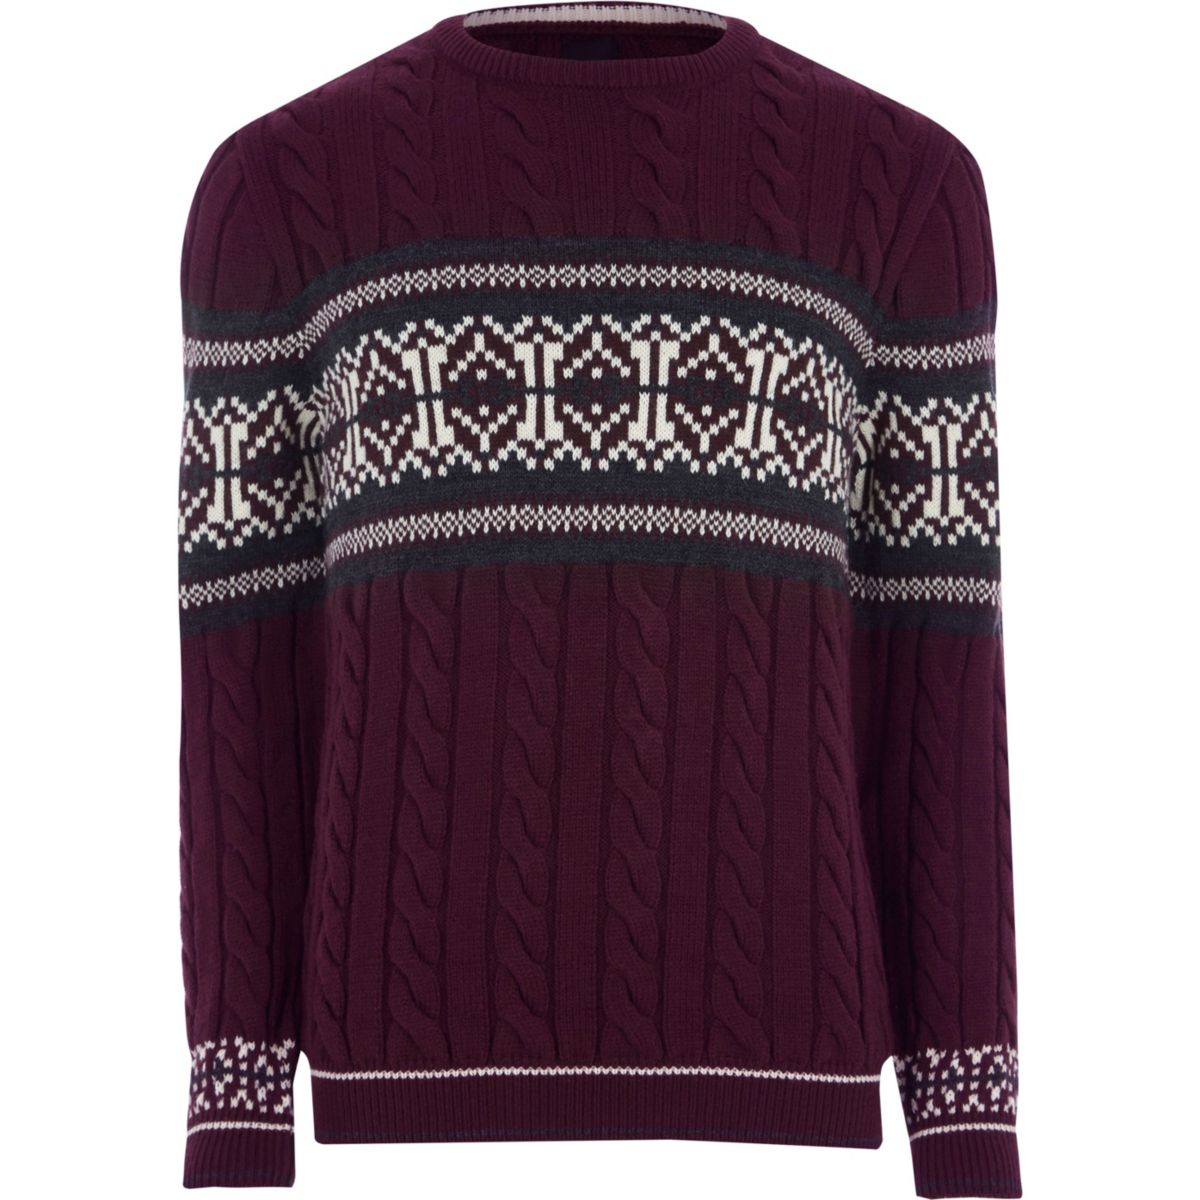 Burgundy cable knit Fairisle Christmas jumper